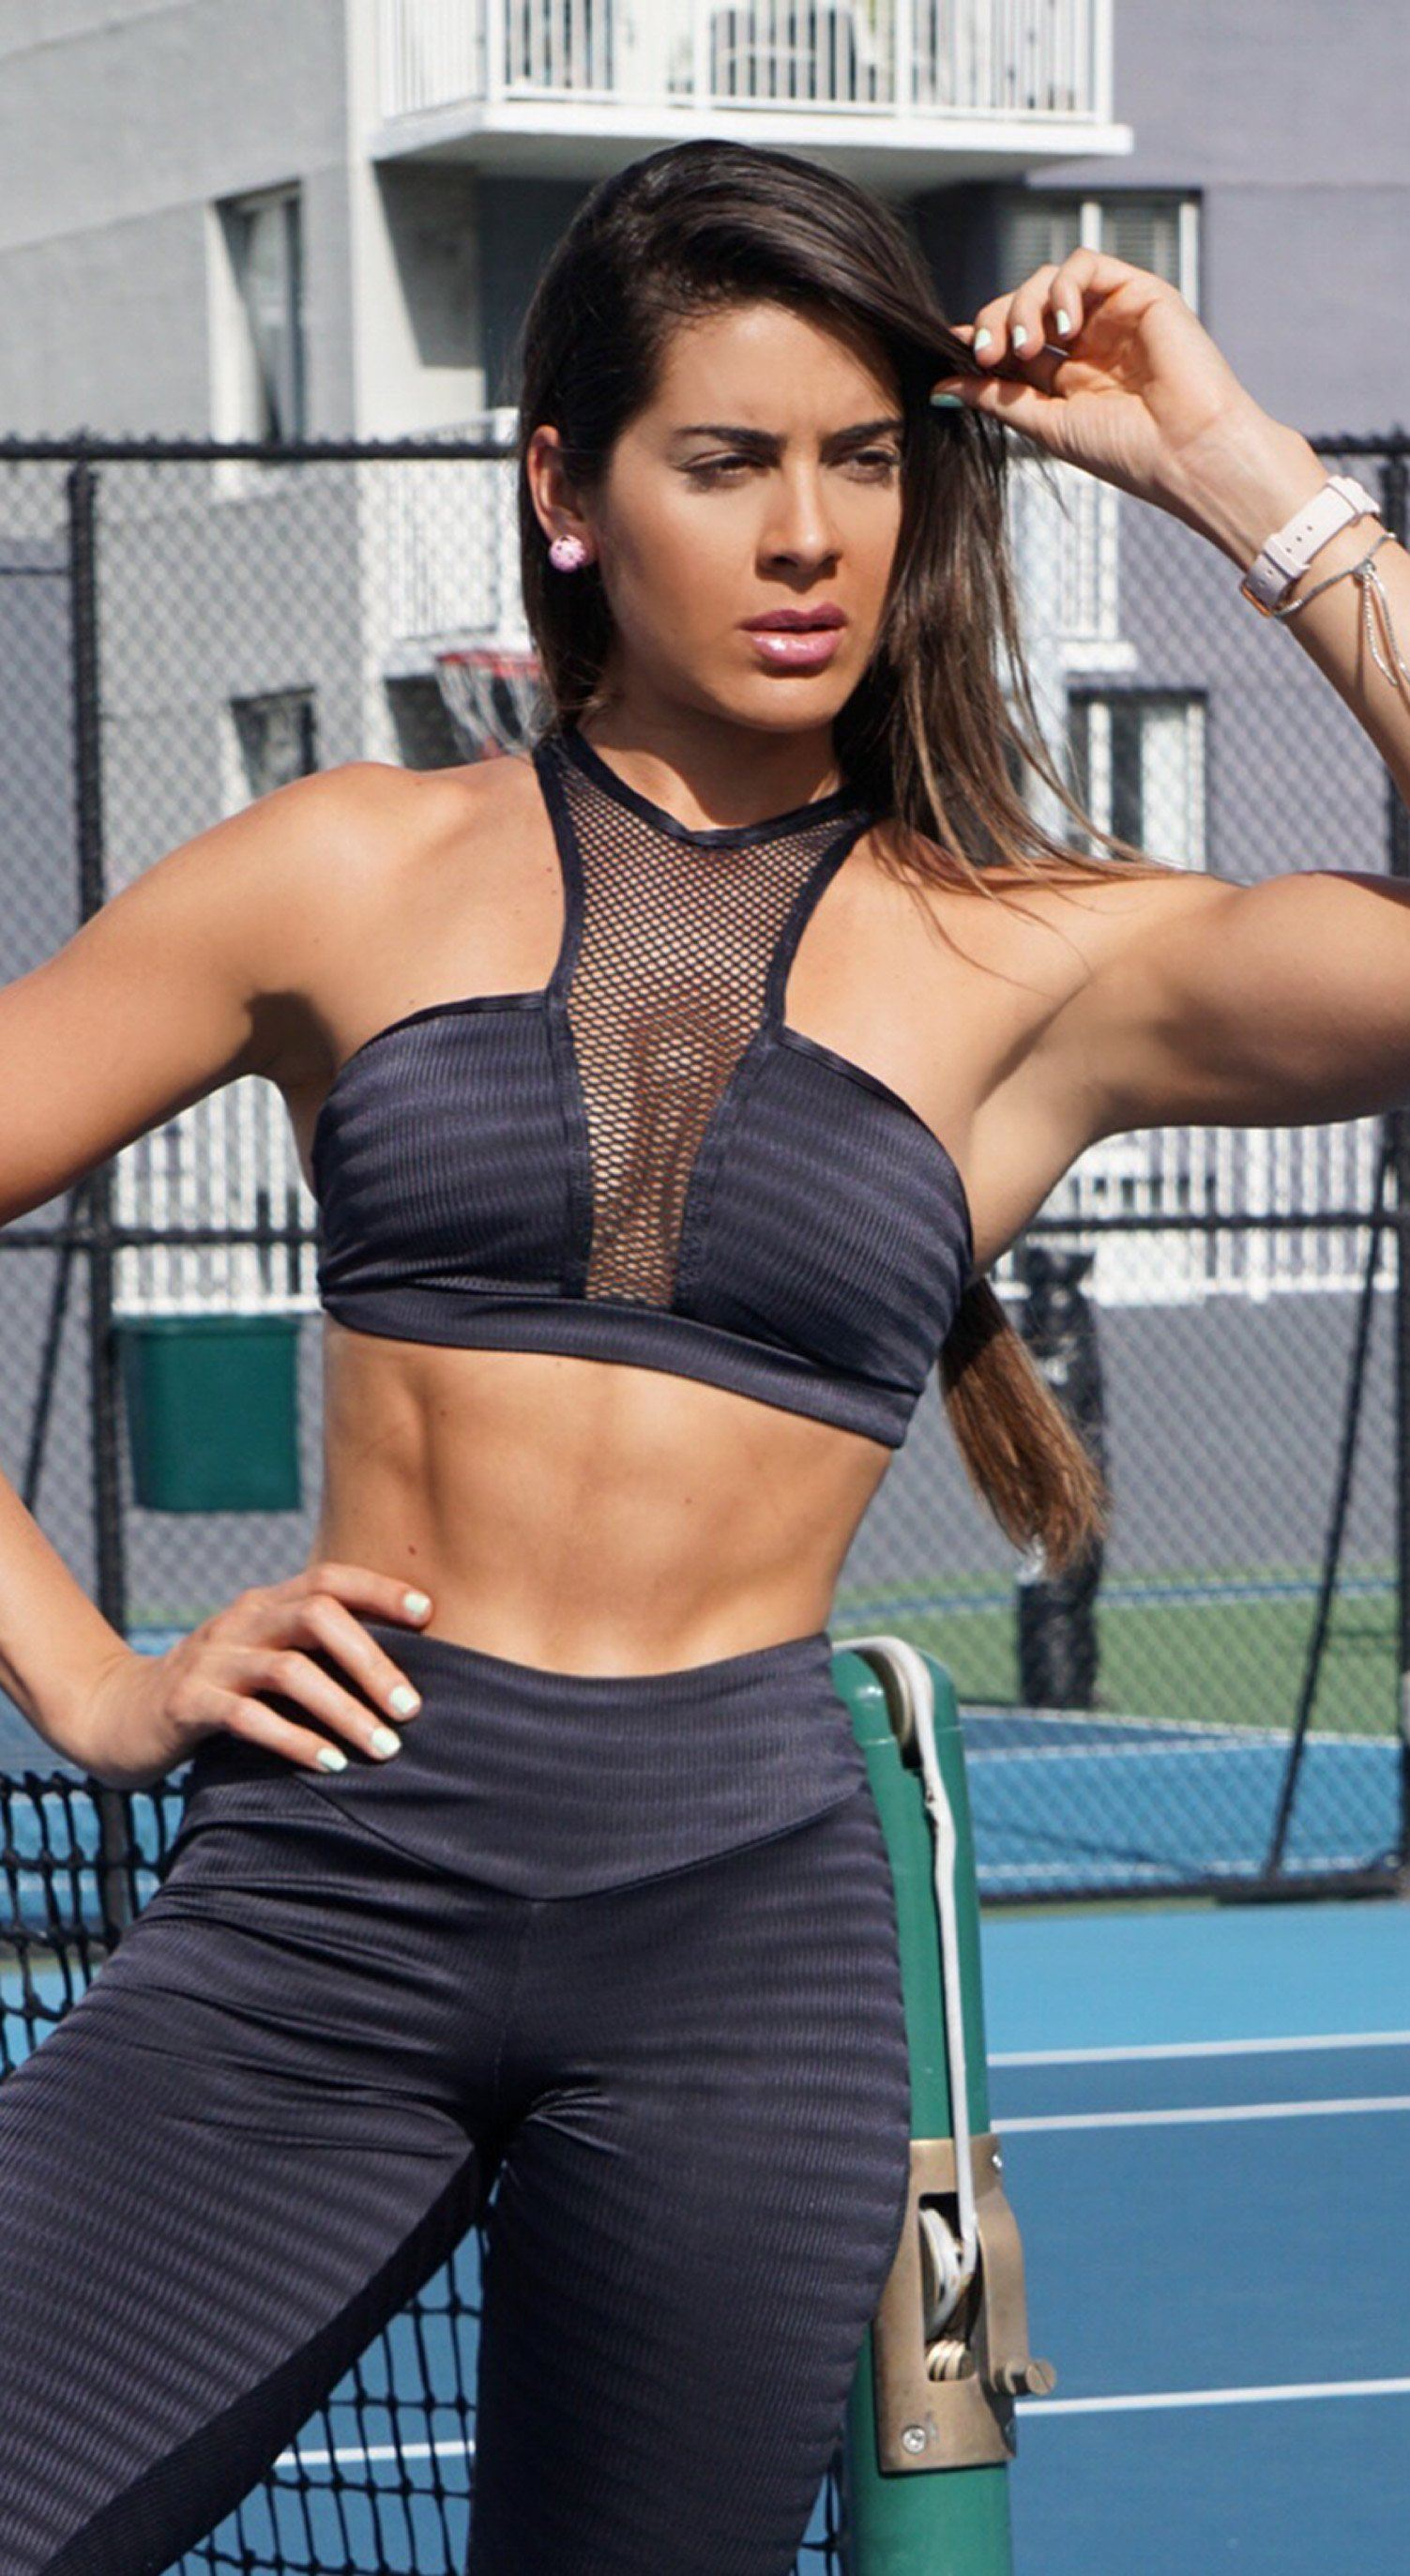 Brazilian Sports Bra - Bombshell Jackar Black